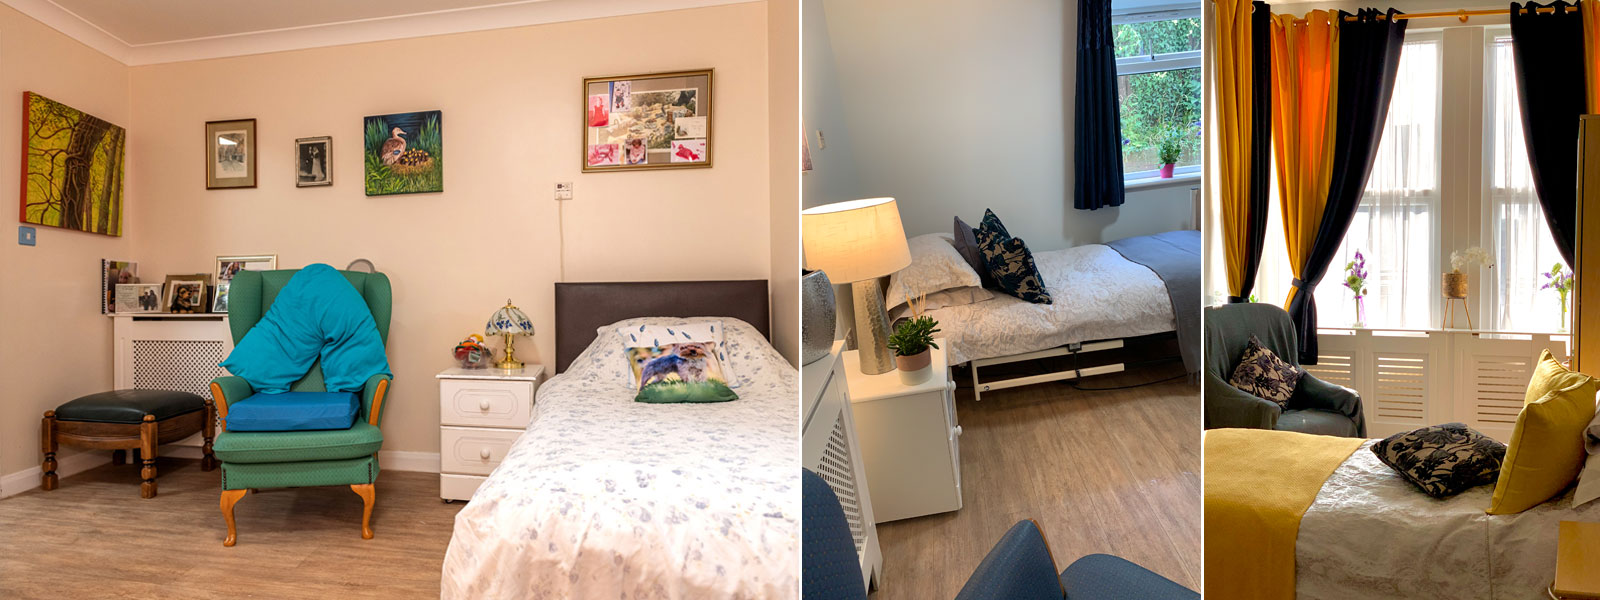 Short stay respite care at Grafton Lodge is suitable for short breaks, trial runs & post-hospital care